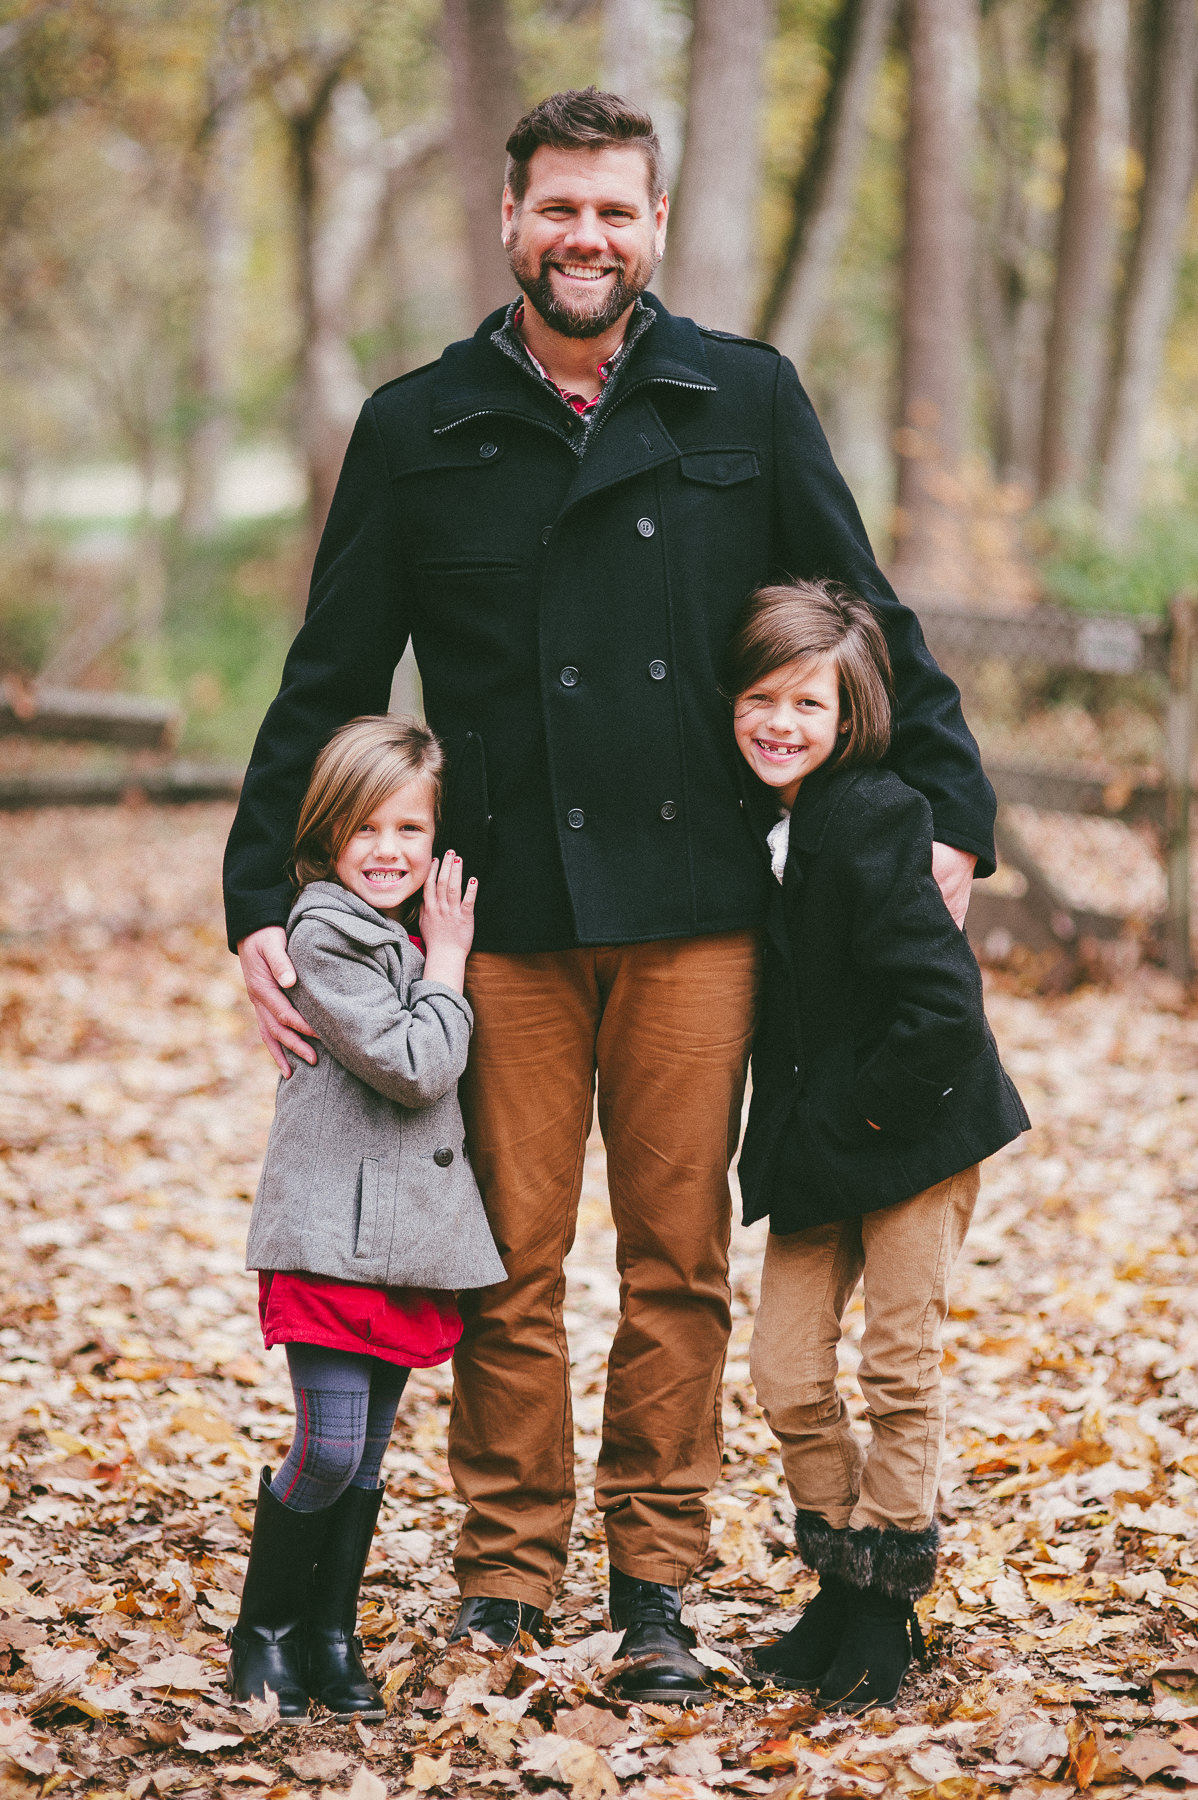 breighton-and-basette-photography-copyrighted-image-blog-betty-chad-and-company-family-shoot-059.jpg